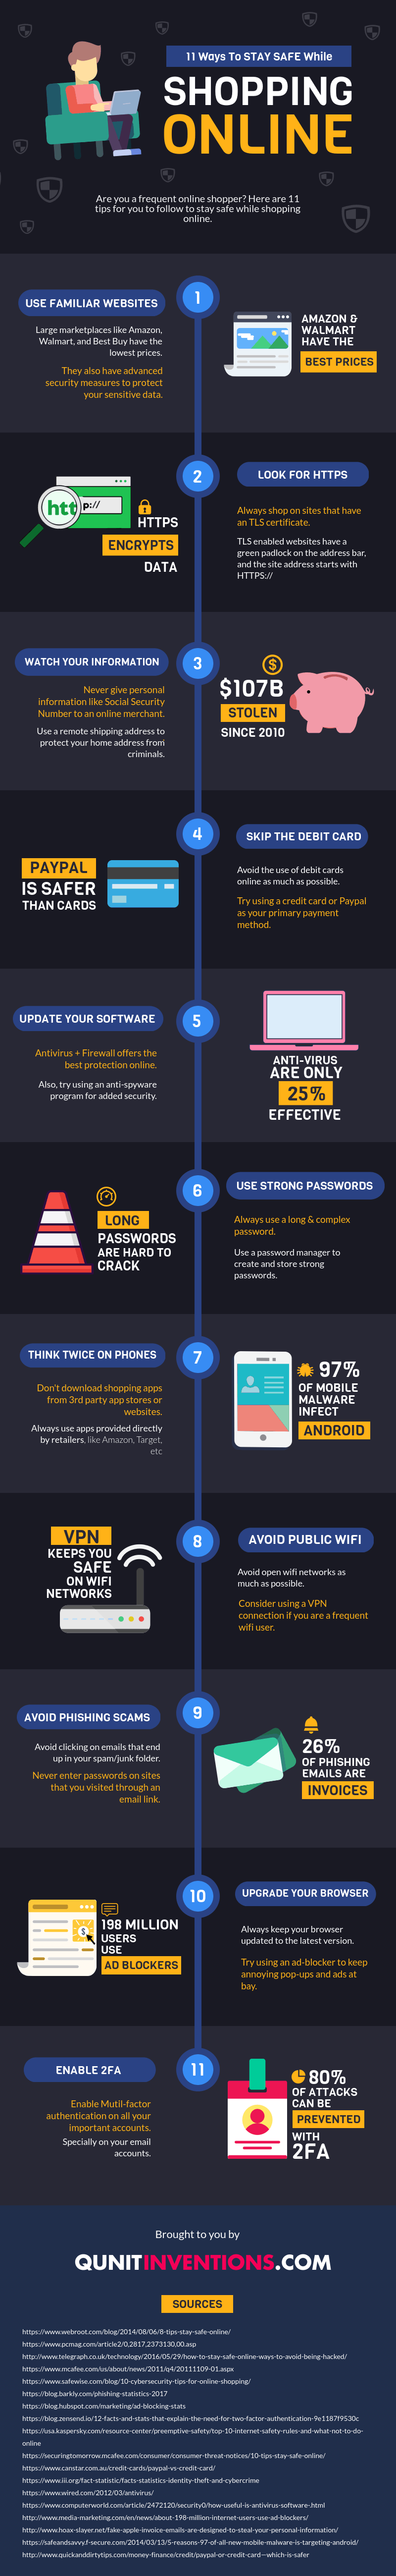 stay safe online shopping guide